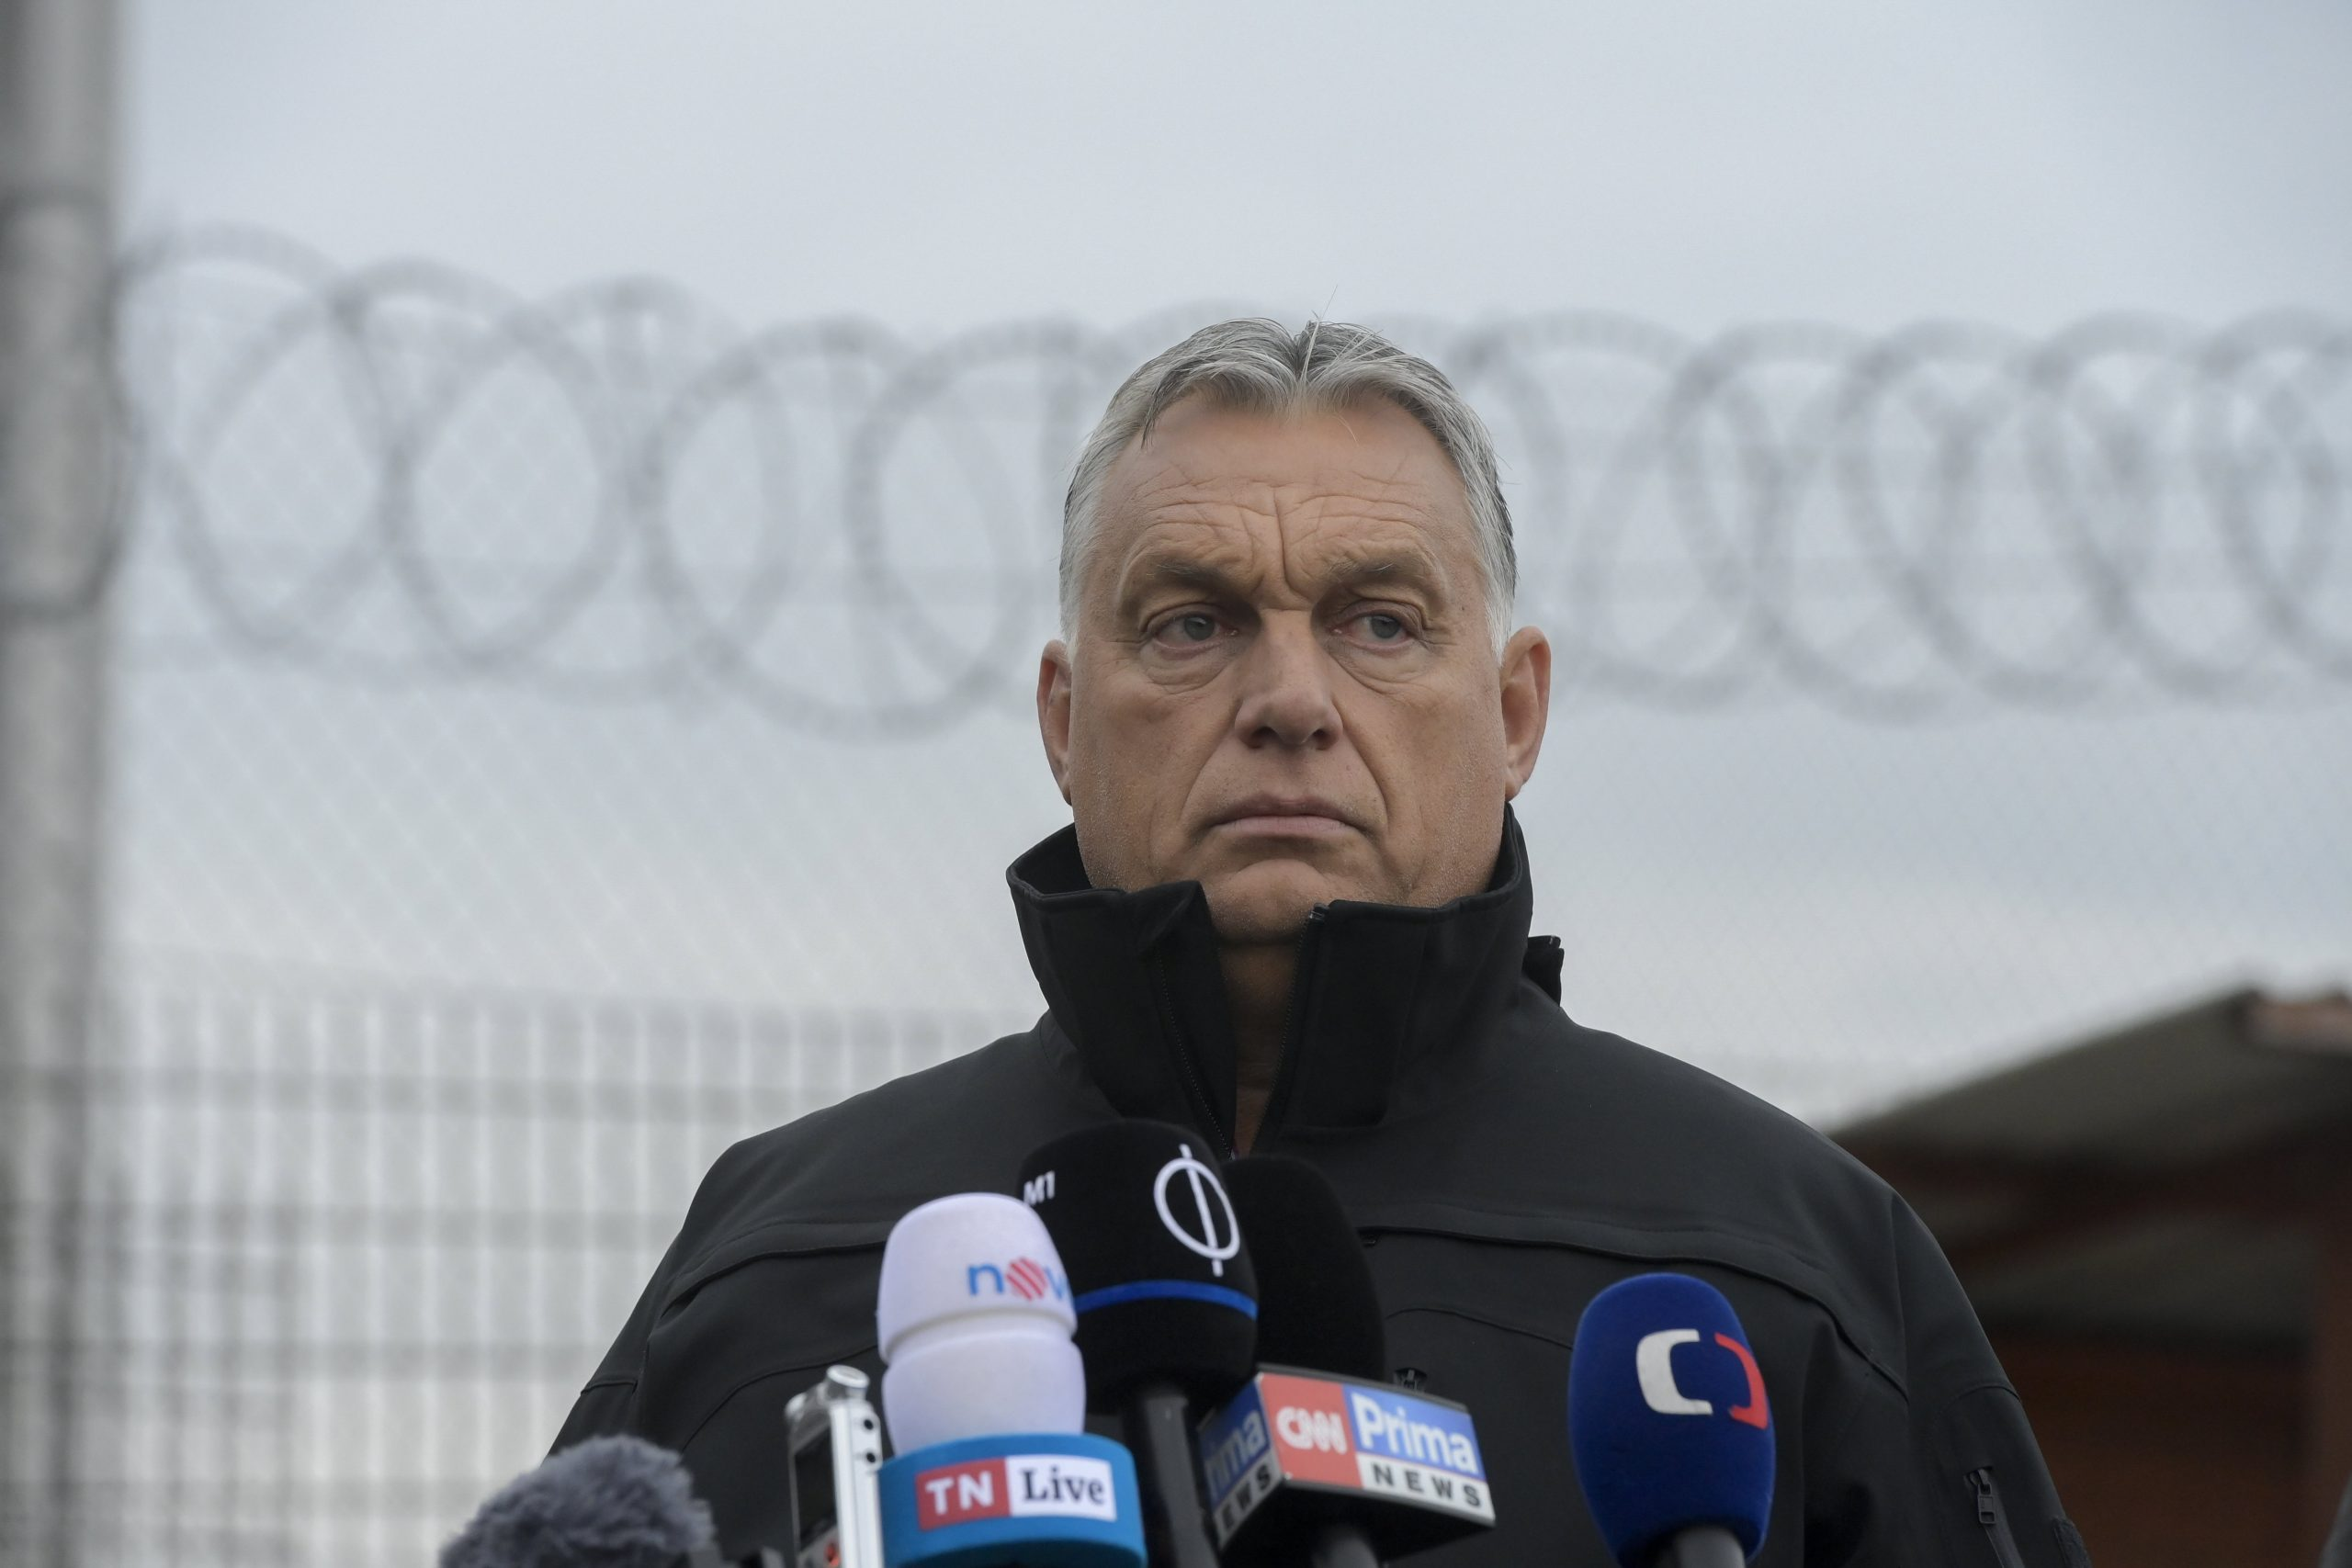 PM Orbán on Border Protection: